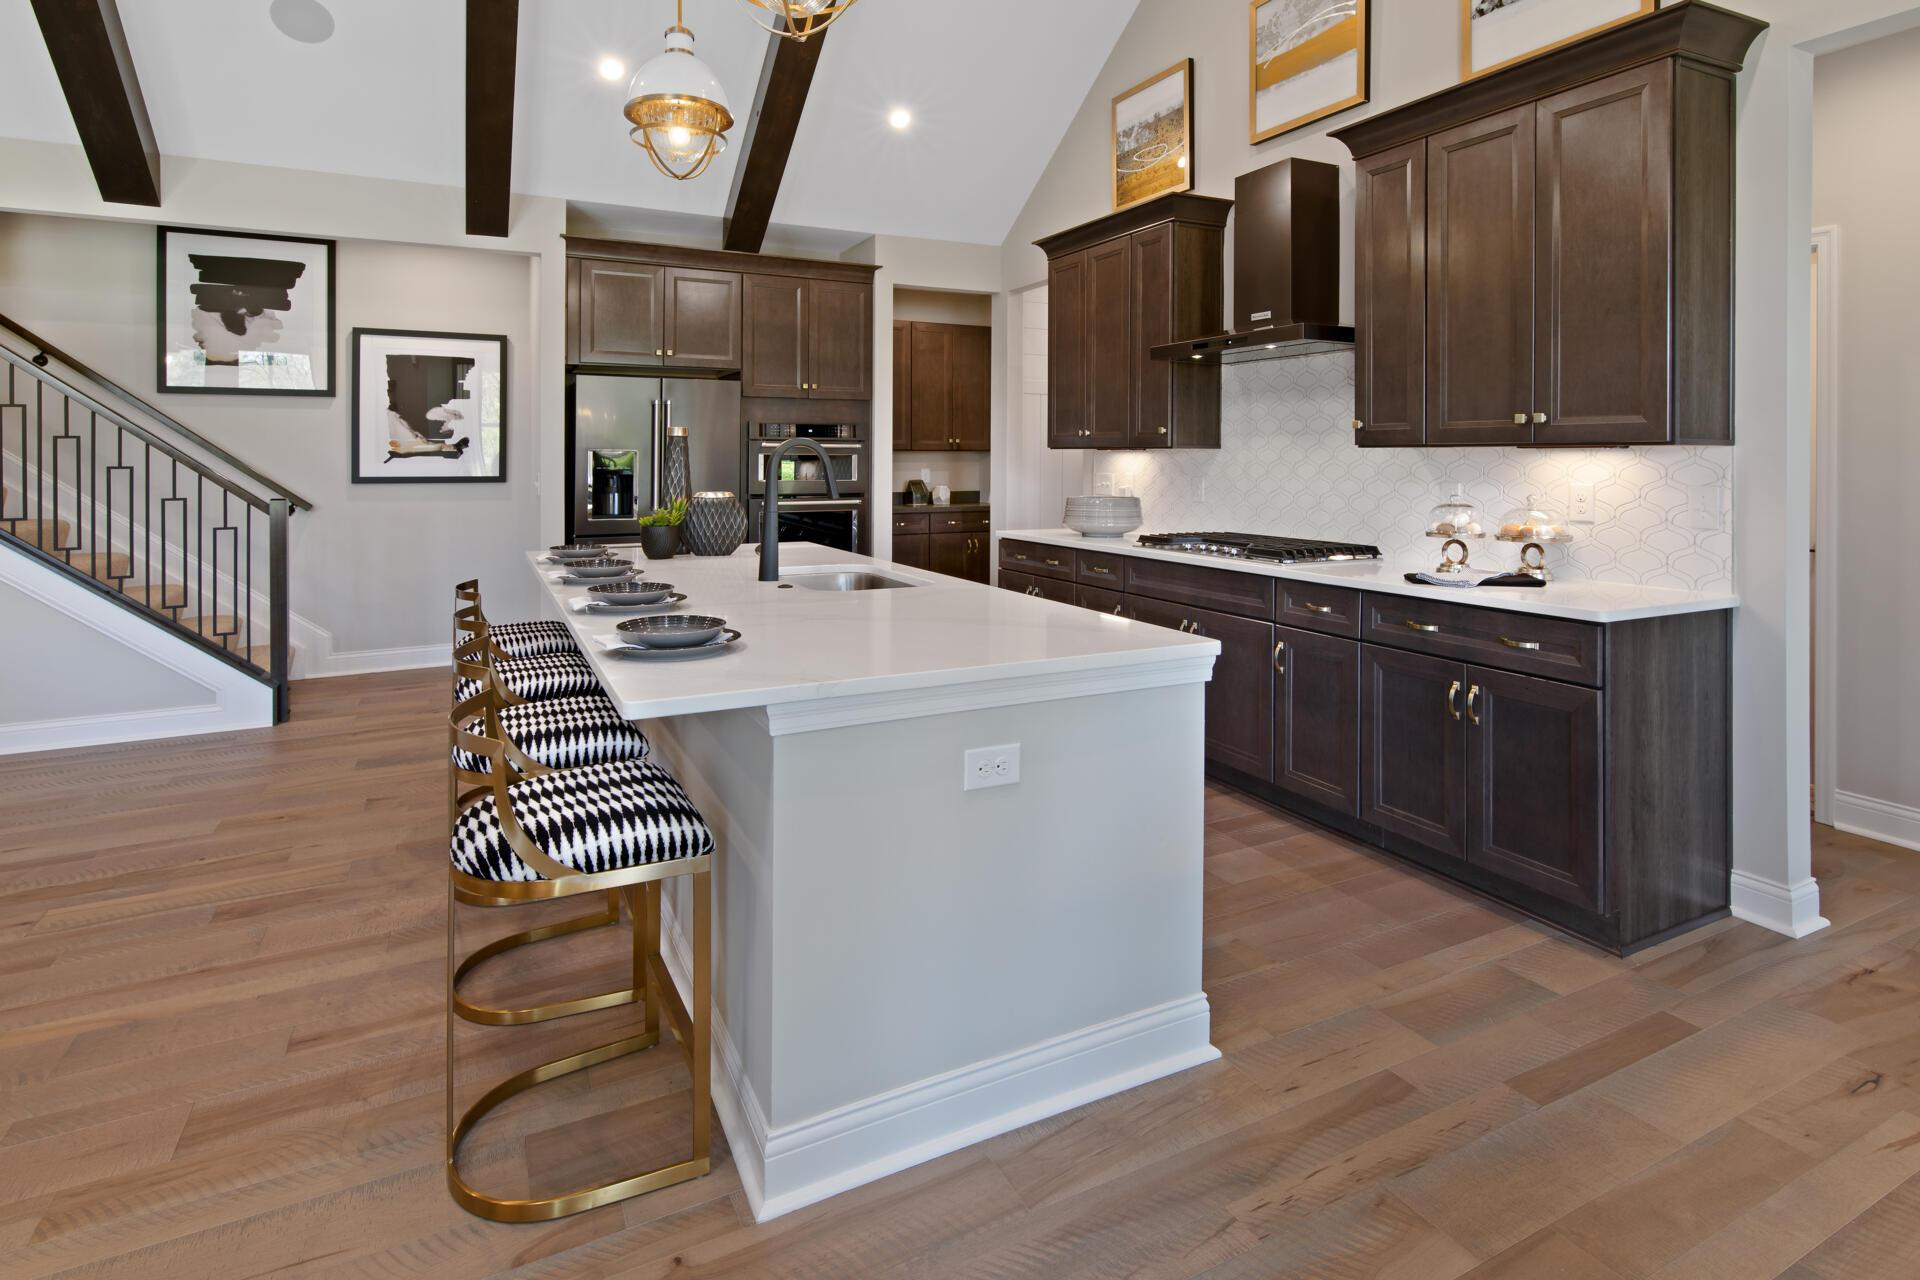 Kitchen featured in the Brennan By Drees Homes in Cincinnati, OH